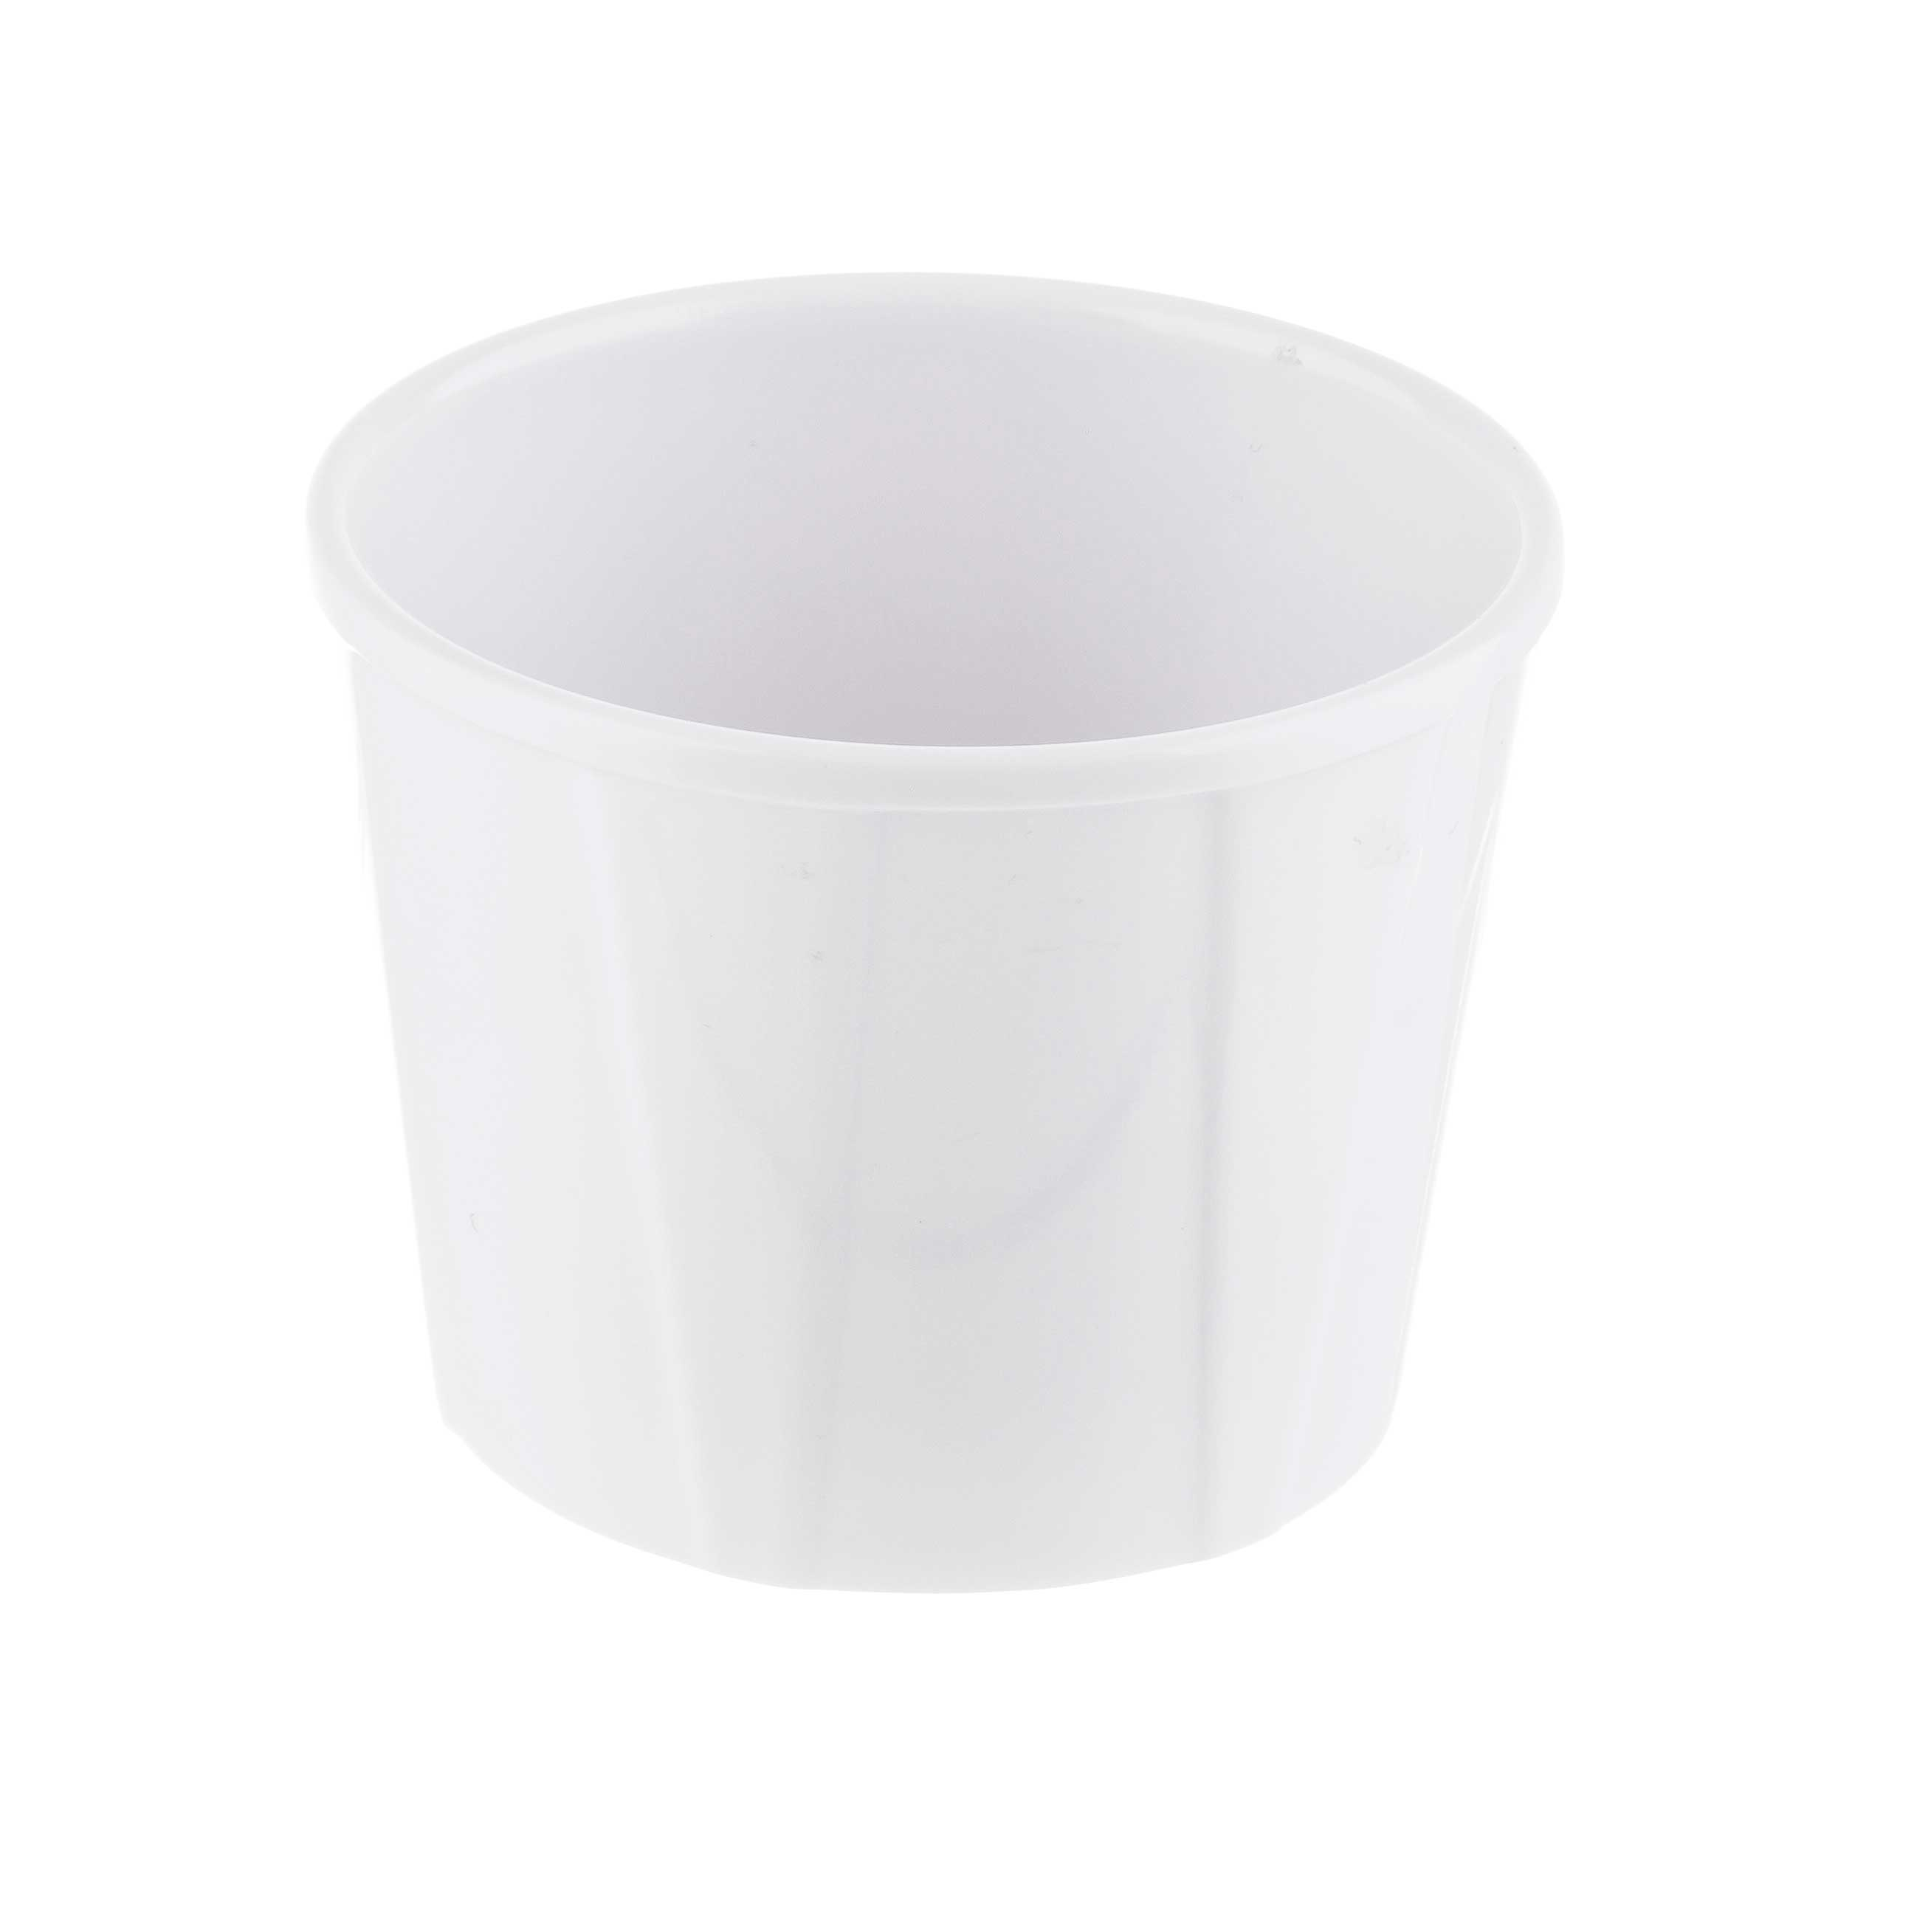 TableCraft Products 240004 souffle bowl / dish